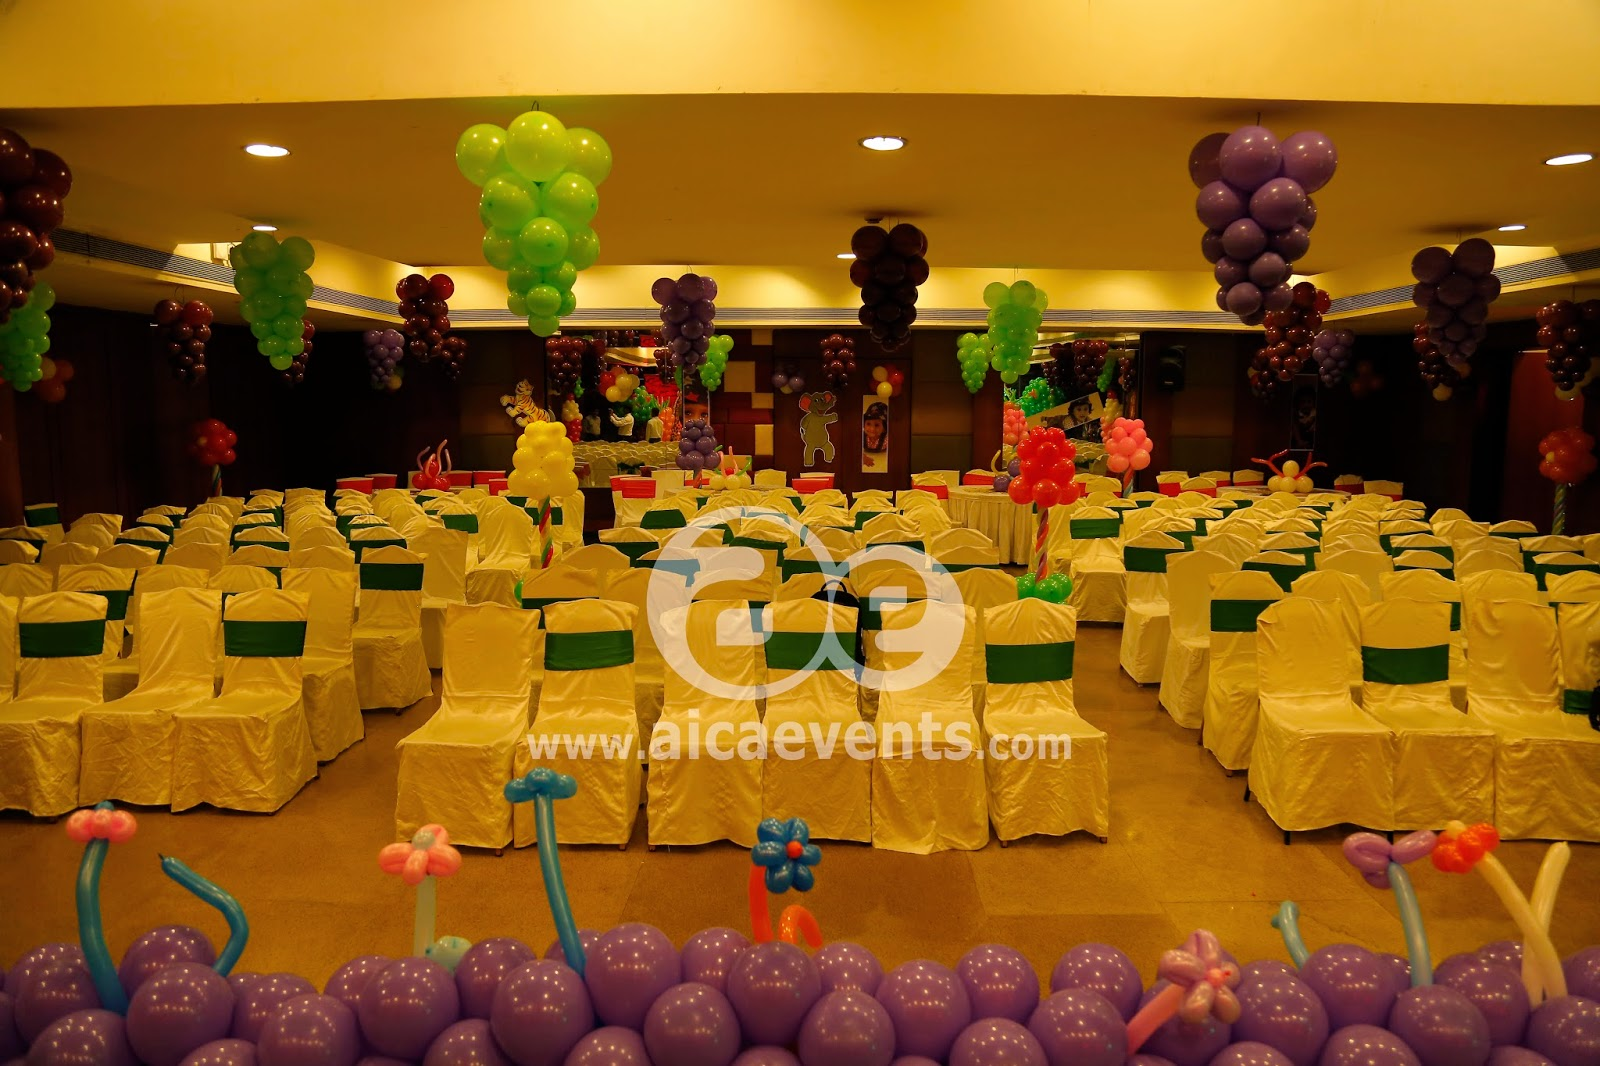 Birthday Decorations Jungle Theme Image Inspiration of Cake and